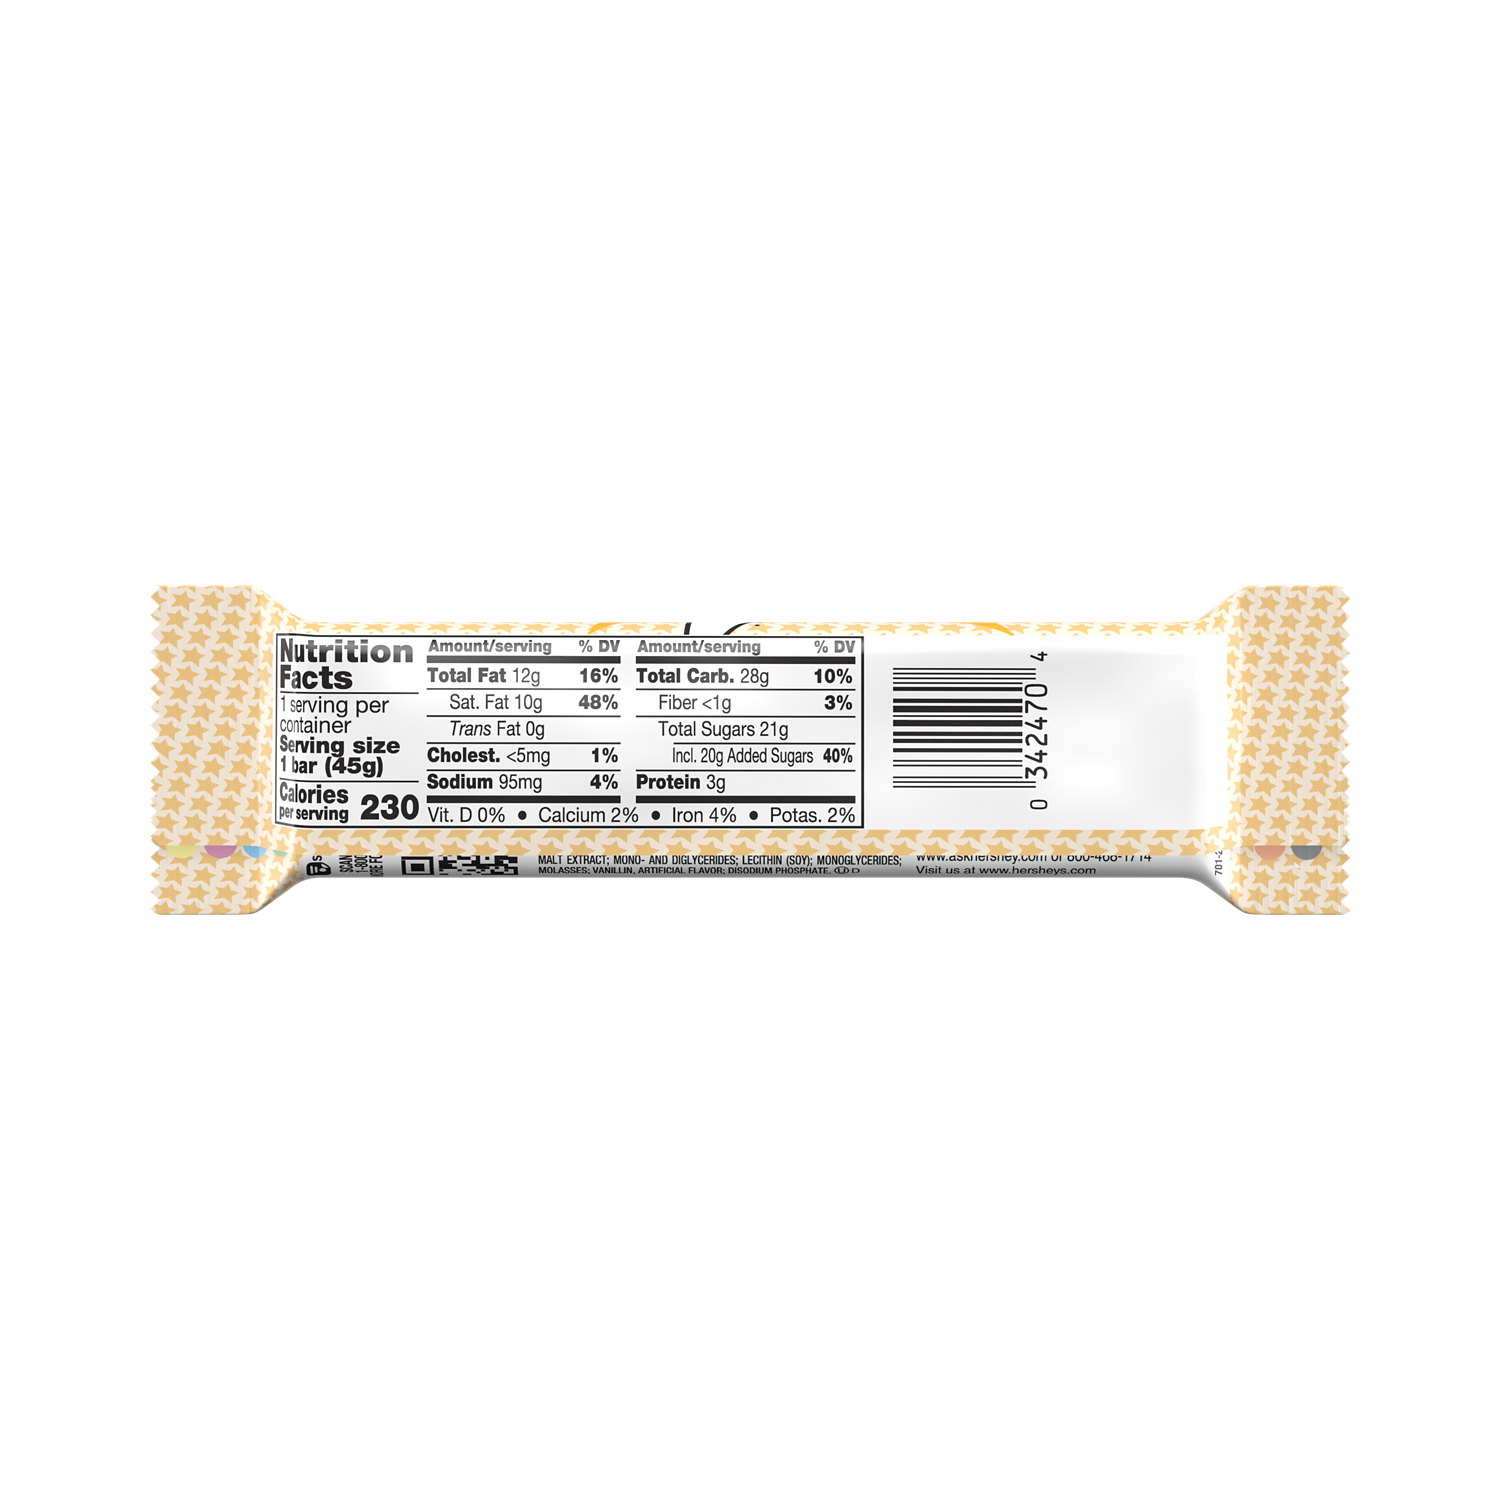 WHATCHAMACALLIT Candy Bar, 1.6 oz - Back of Package